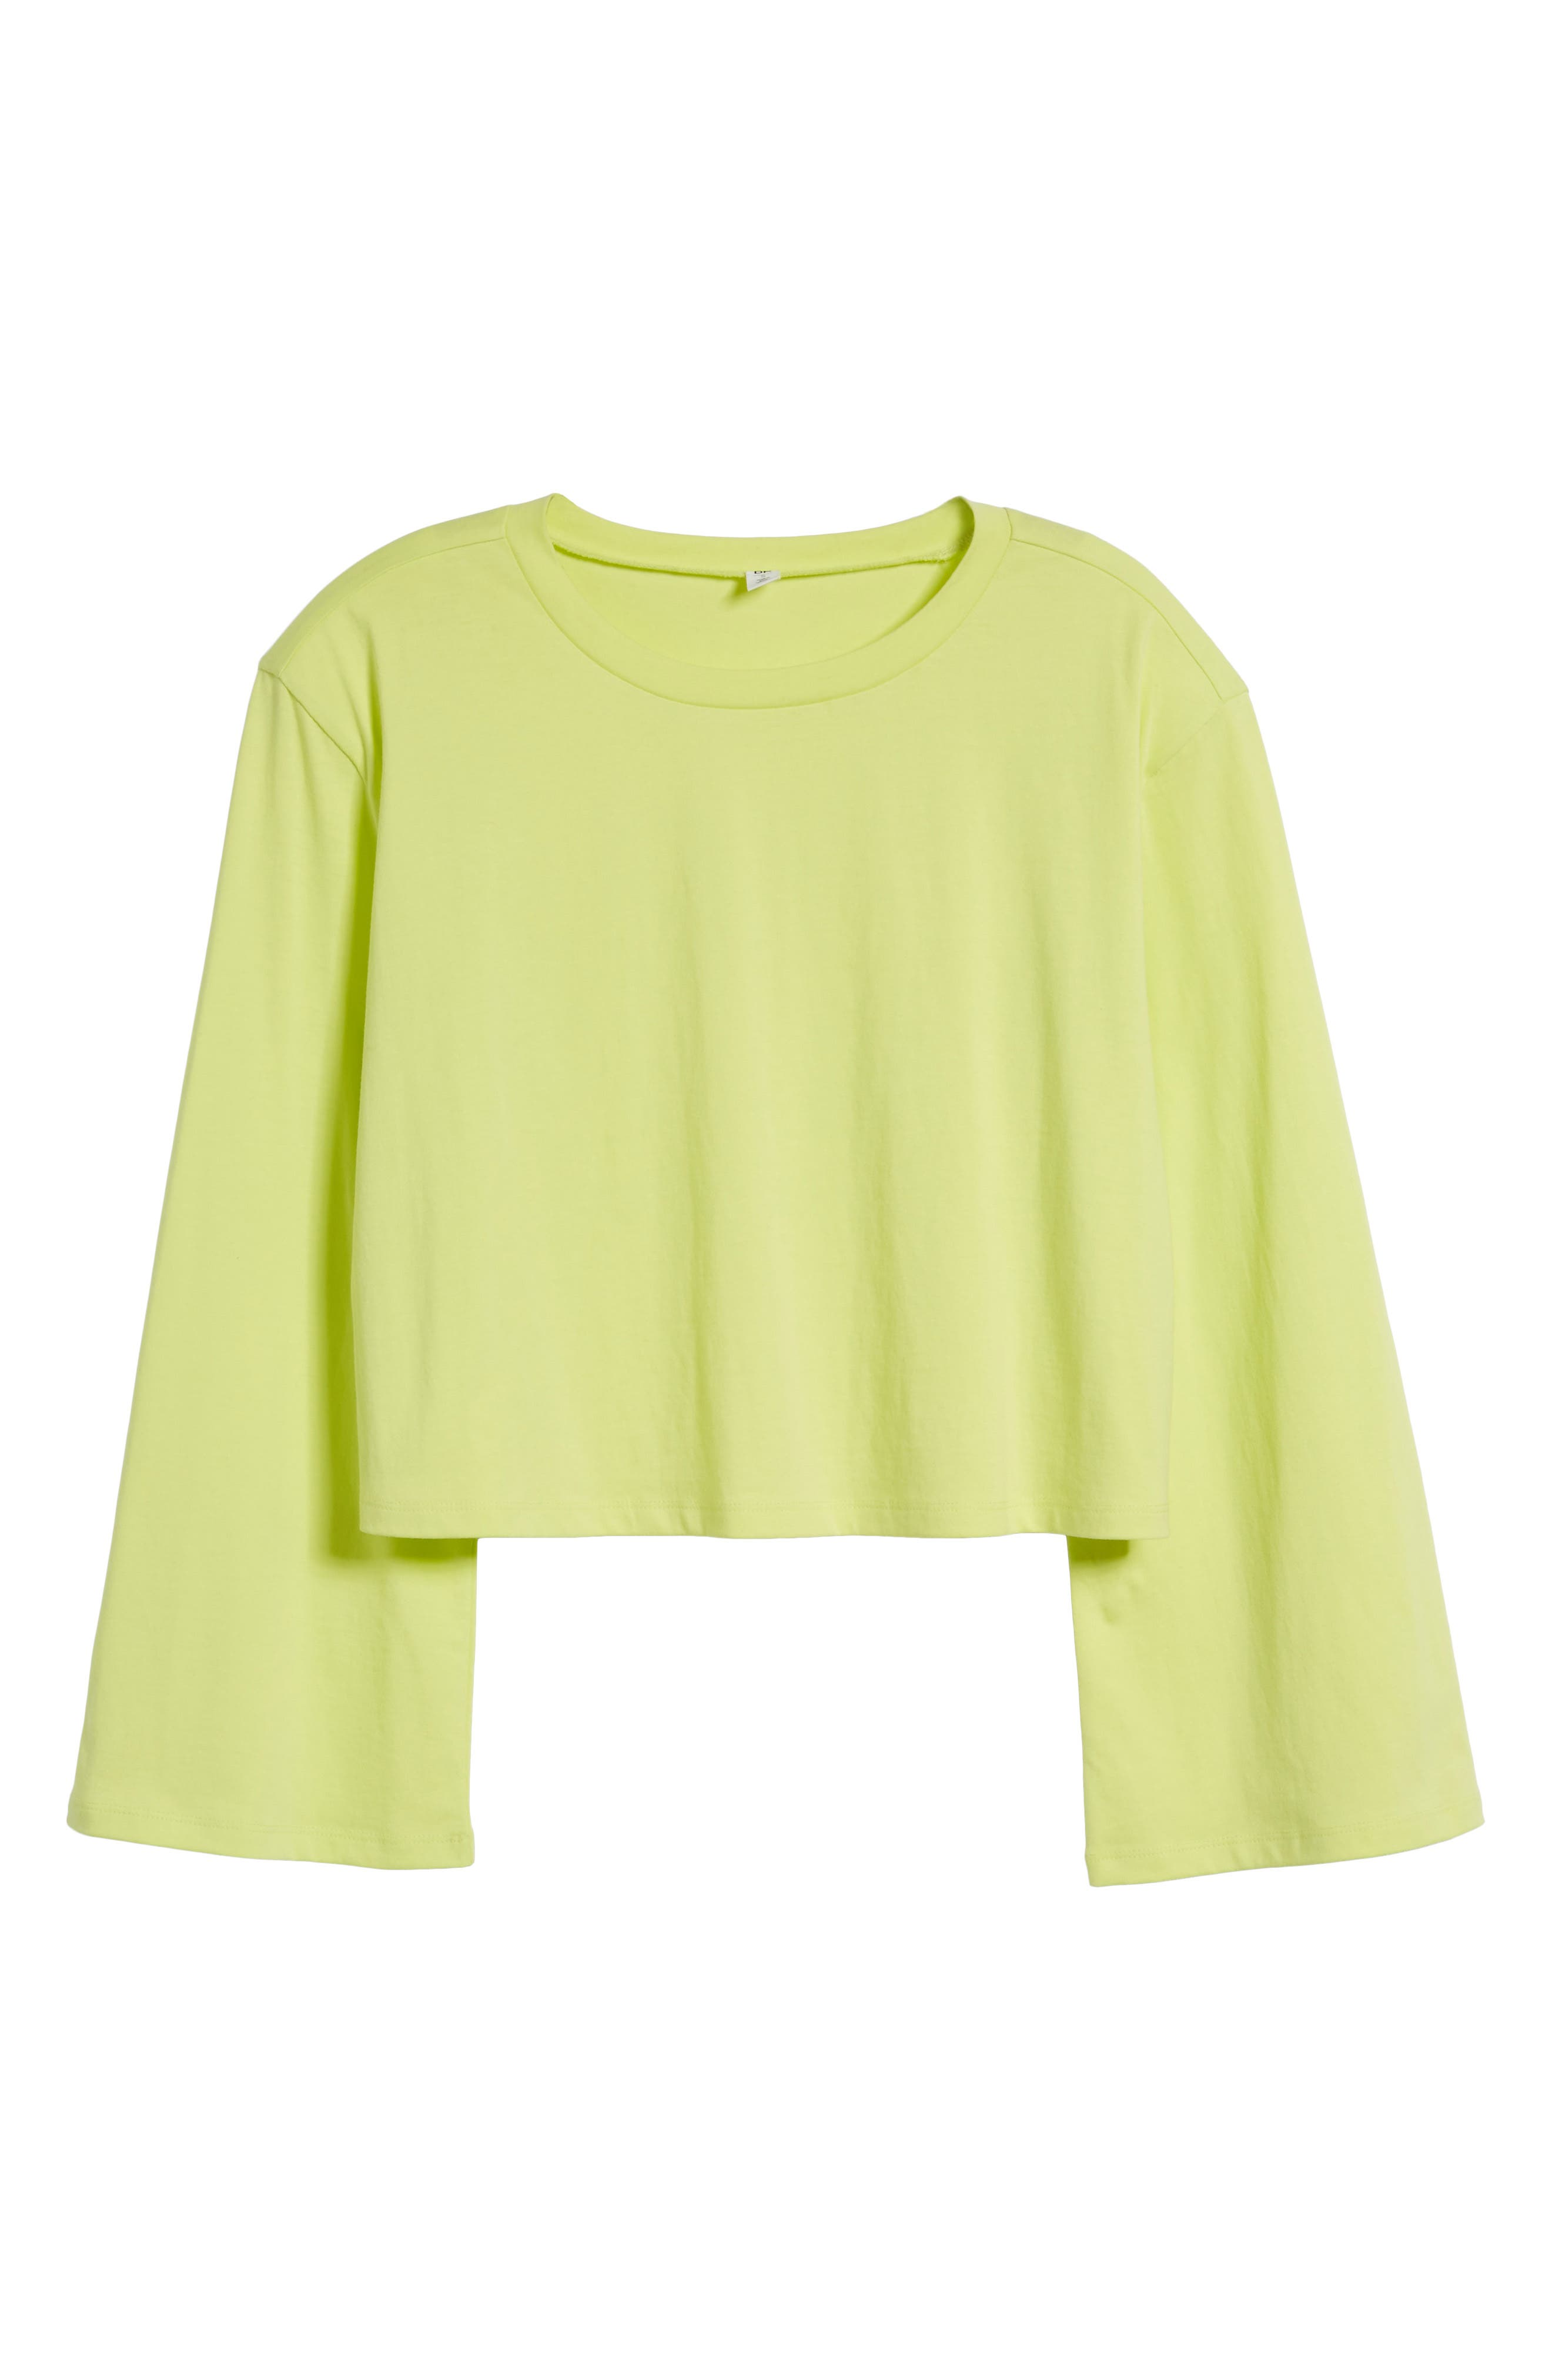 Shoulder Pad Tee,                             Alternate thumbnail 6, color,                             Green Obi